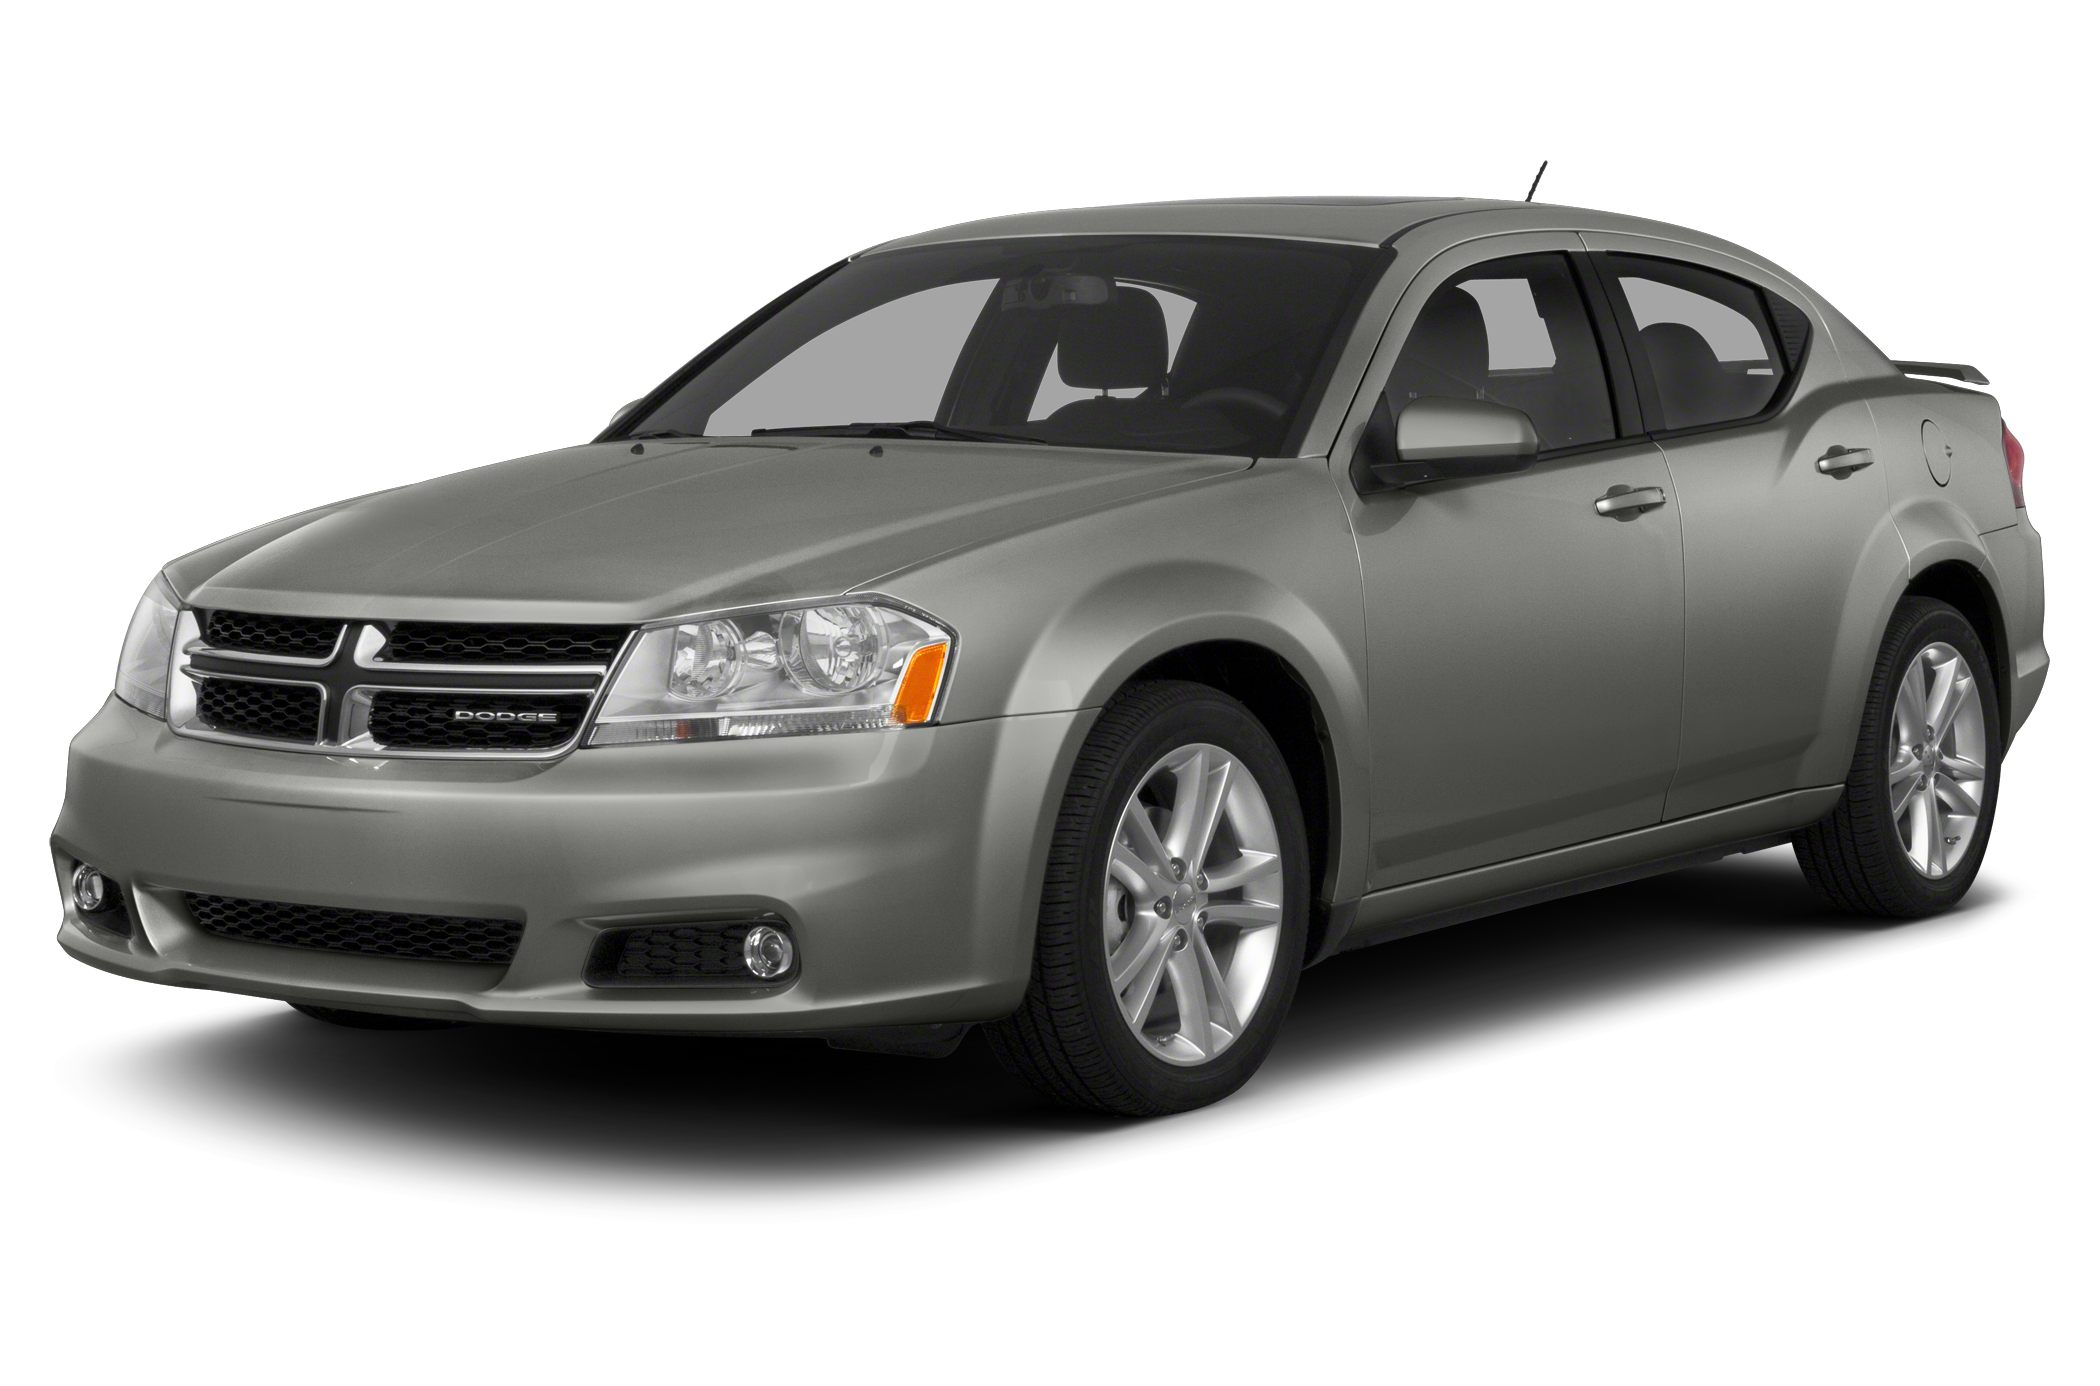 2013 Dodge Avenger SE DISCLAIMER We are excited to offer this vehicle to you but it is currently